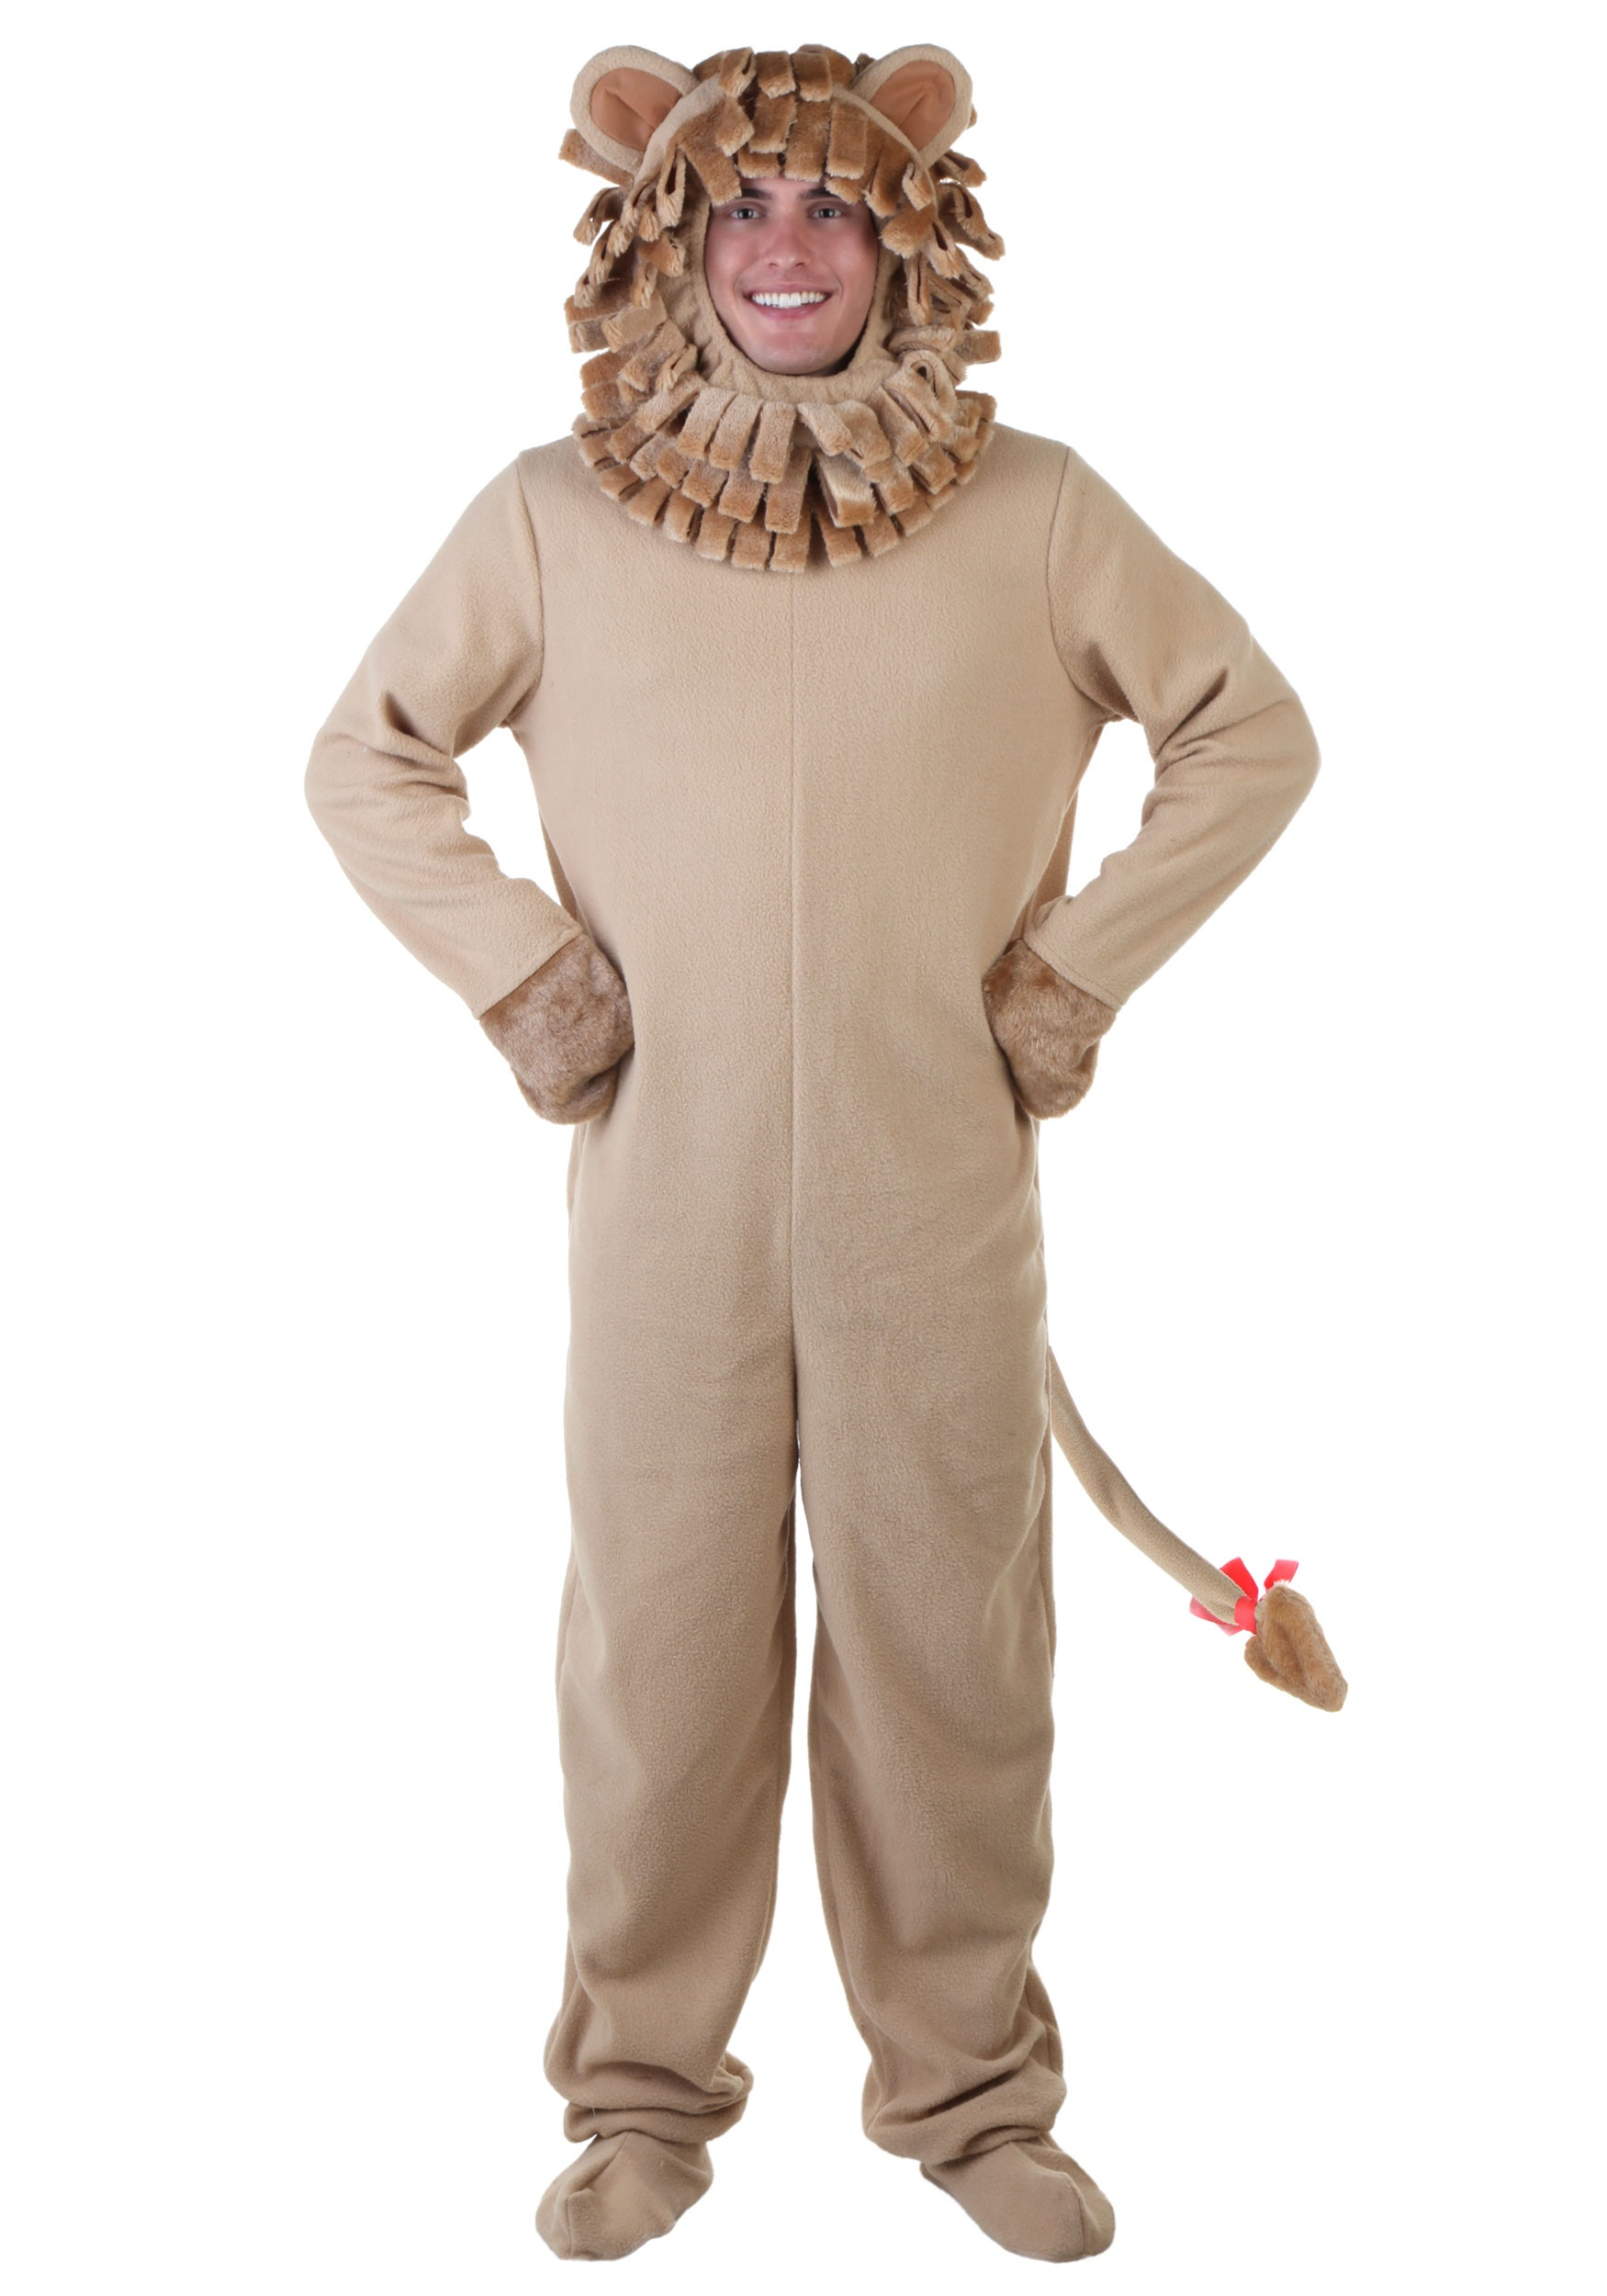 Lion Jumpsuit Mens Fancy Dress Jungle Zoo Animal Adults Novelty Costume Outfit